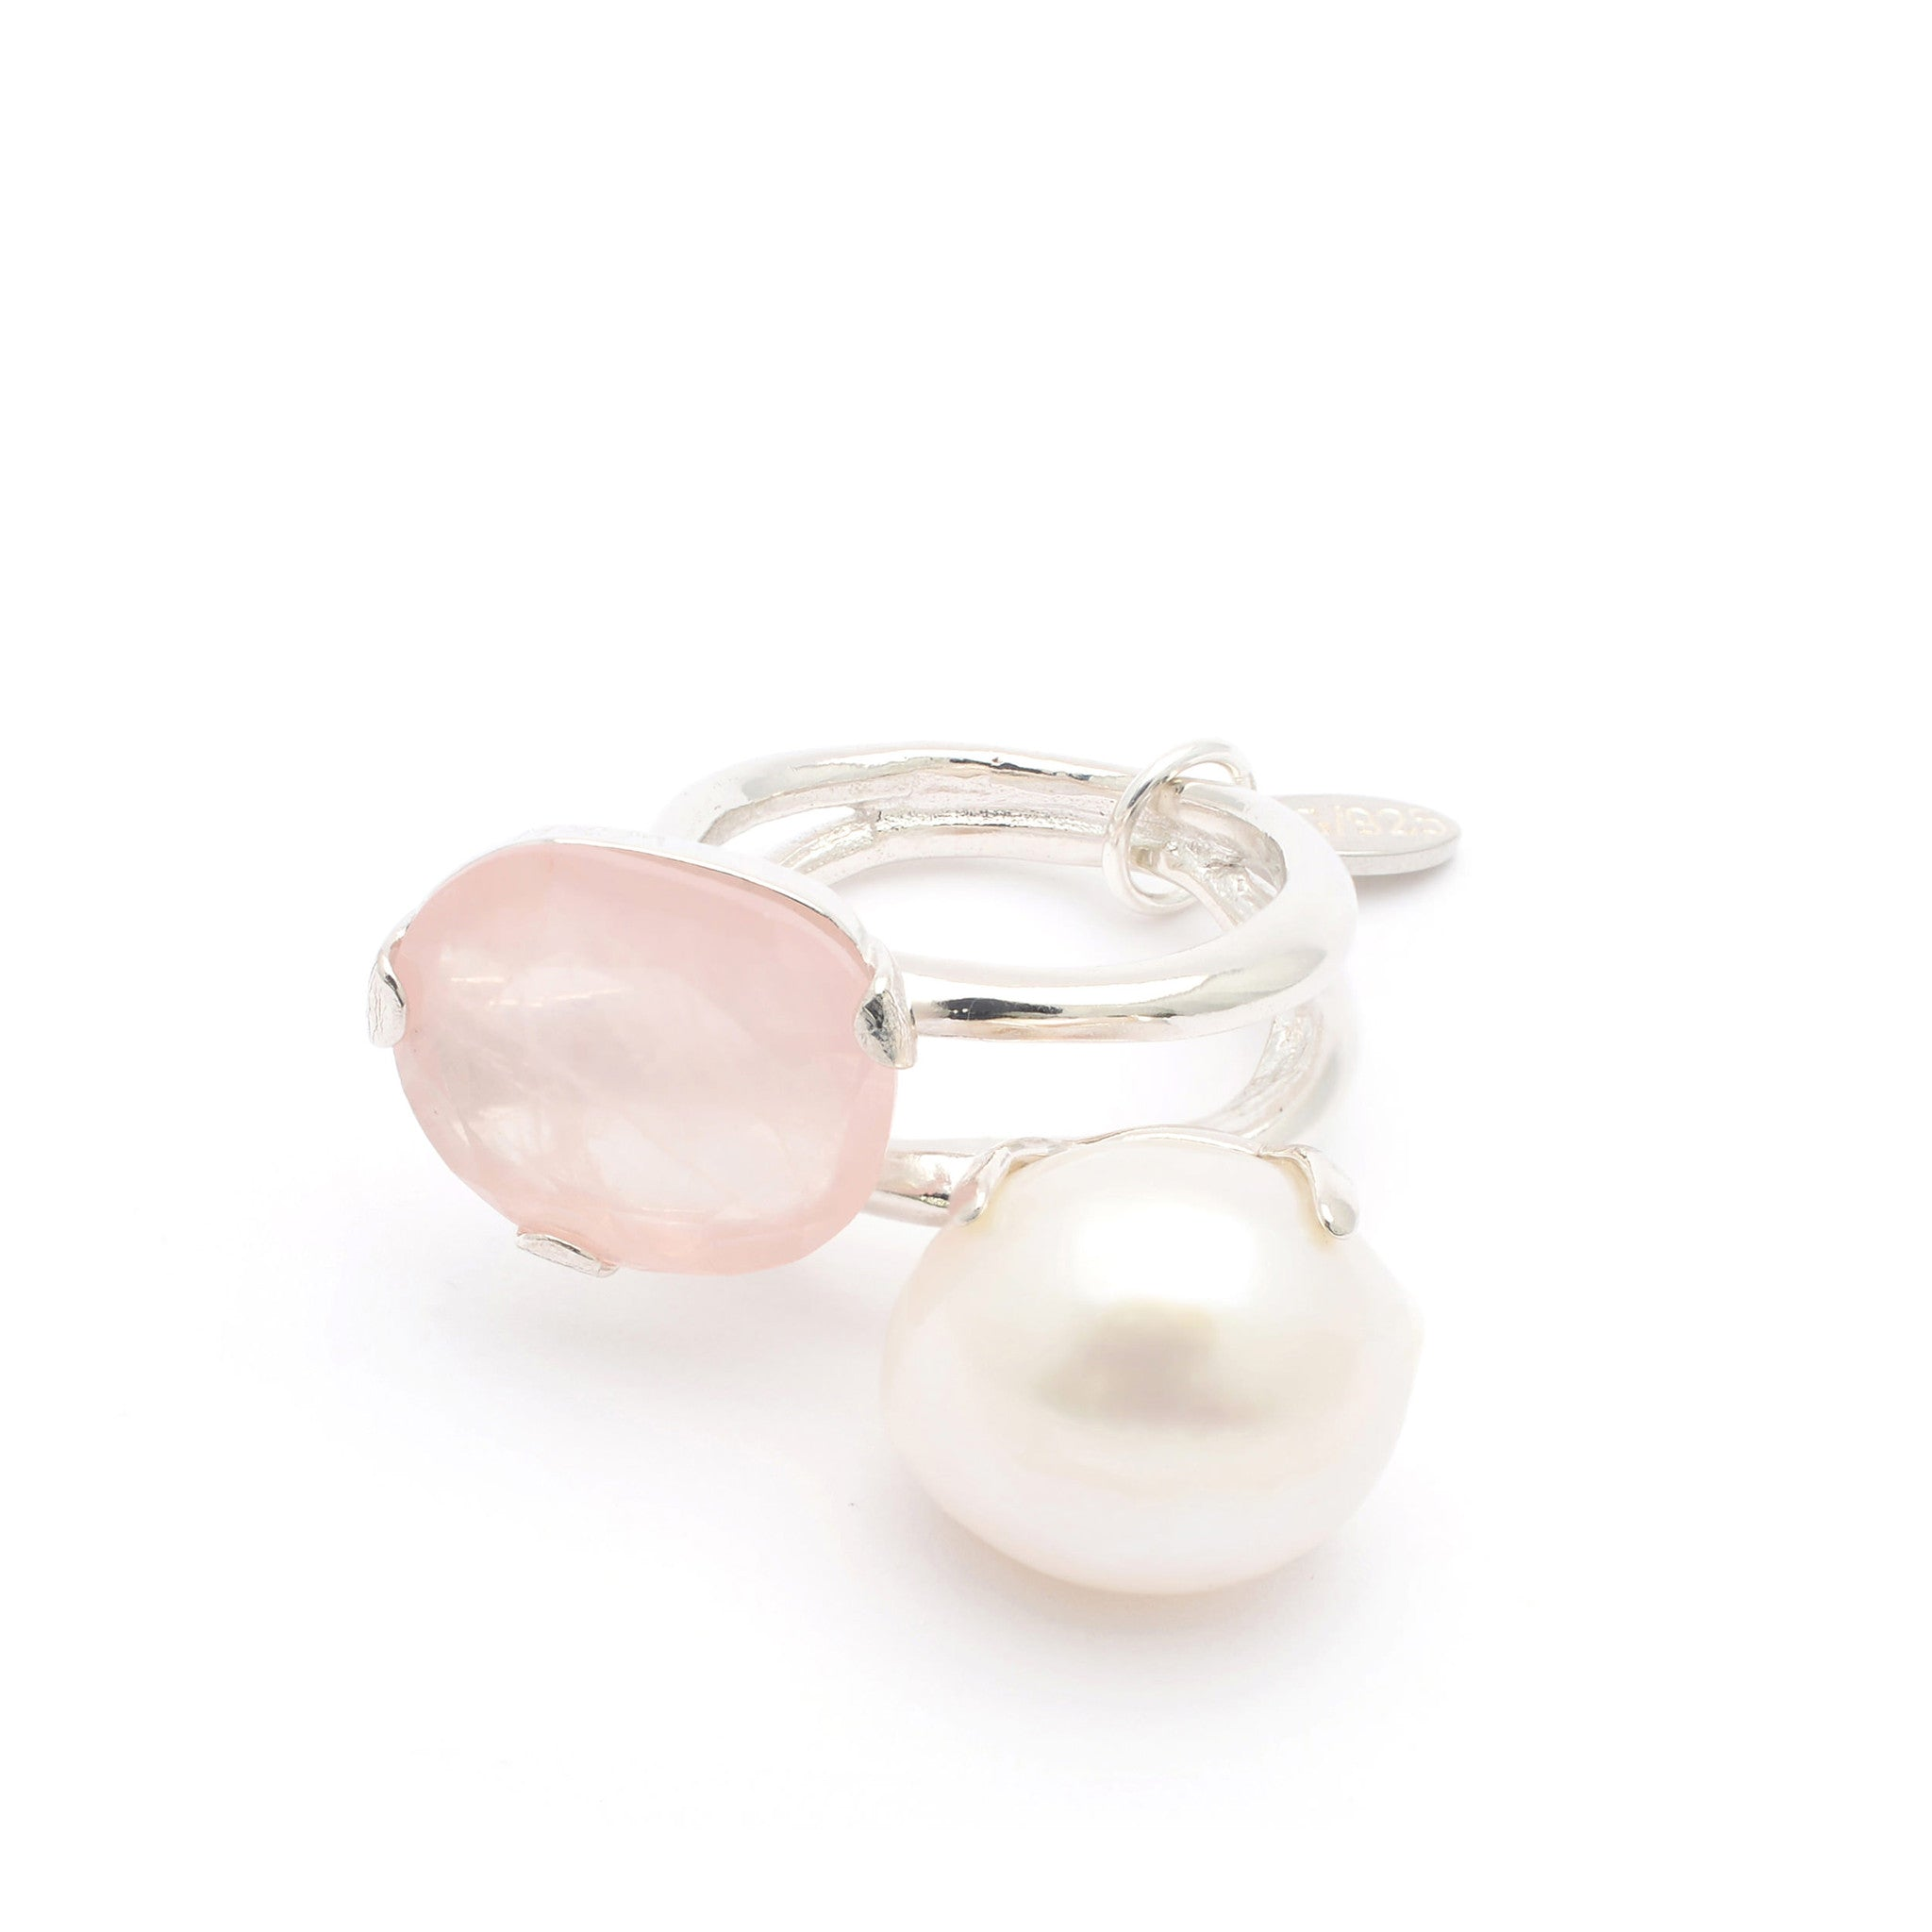 Sterling Silver statement ring with Quartz and Freshwater Pearl